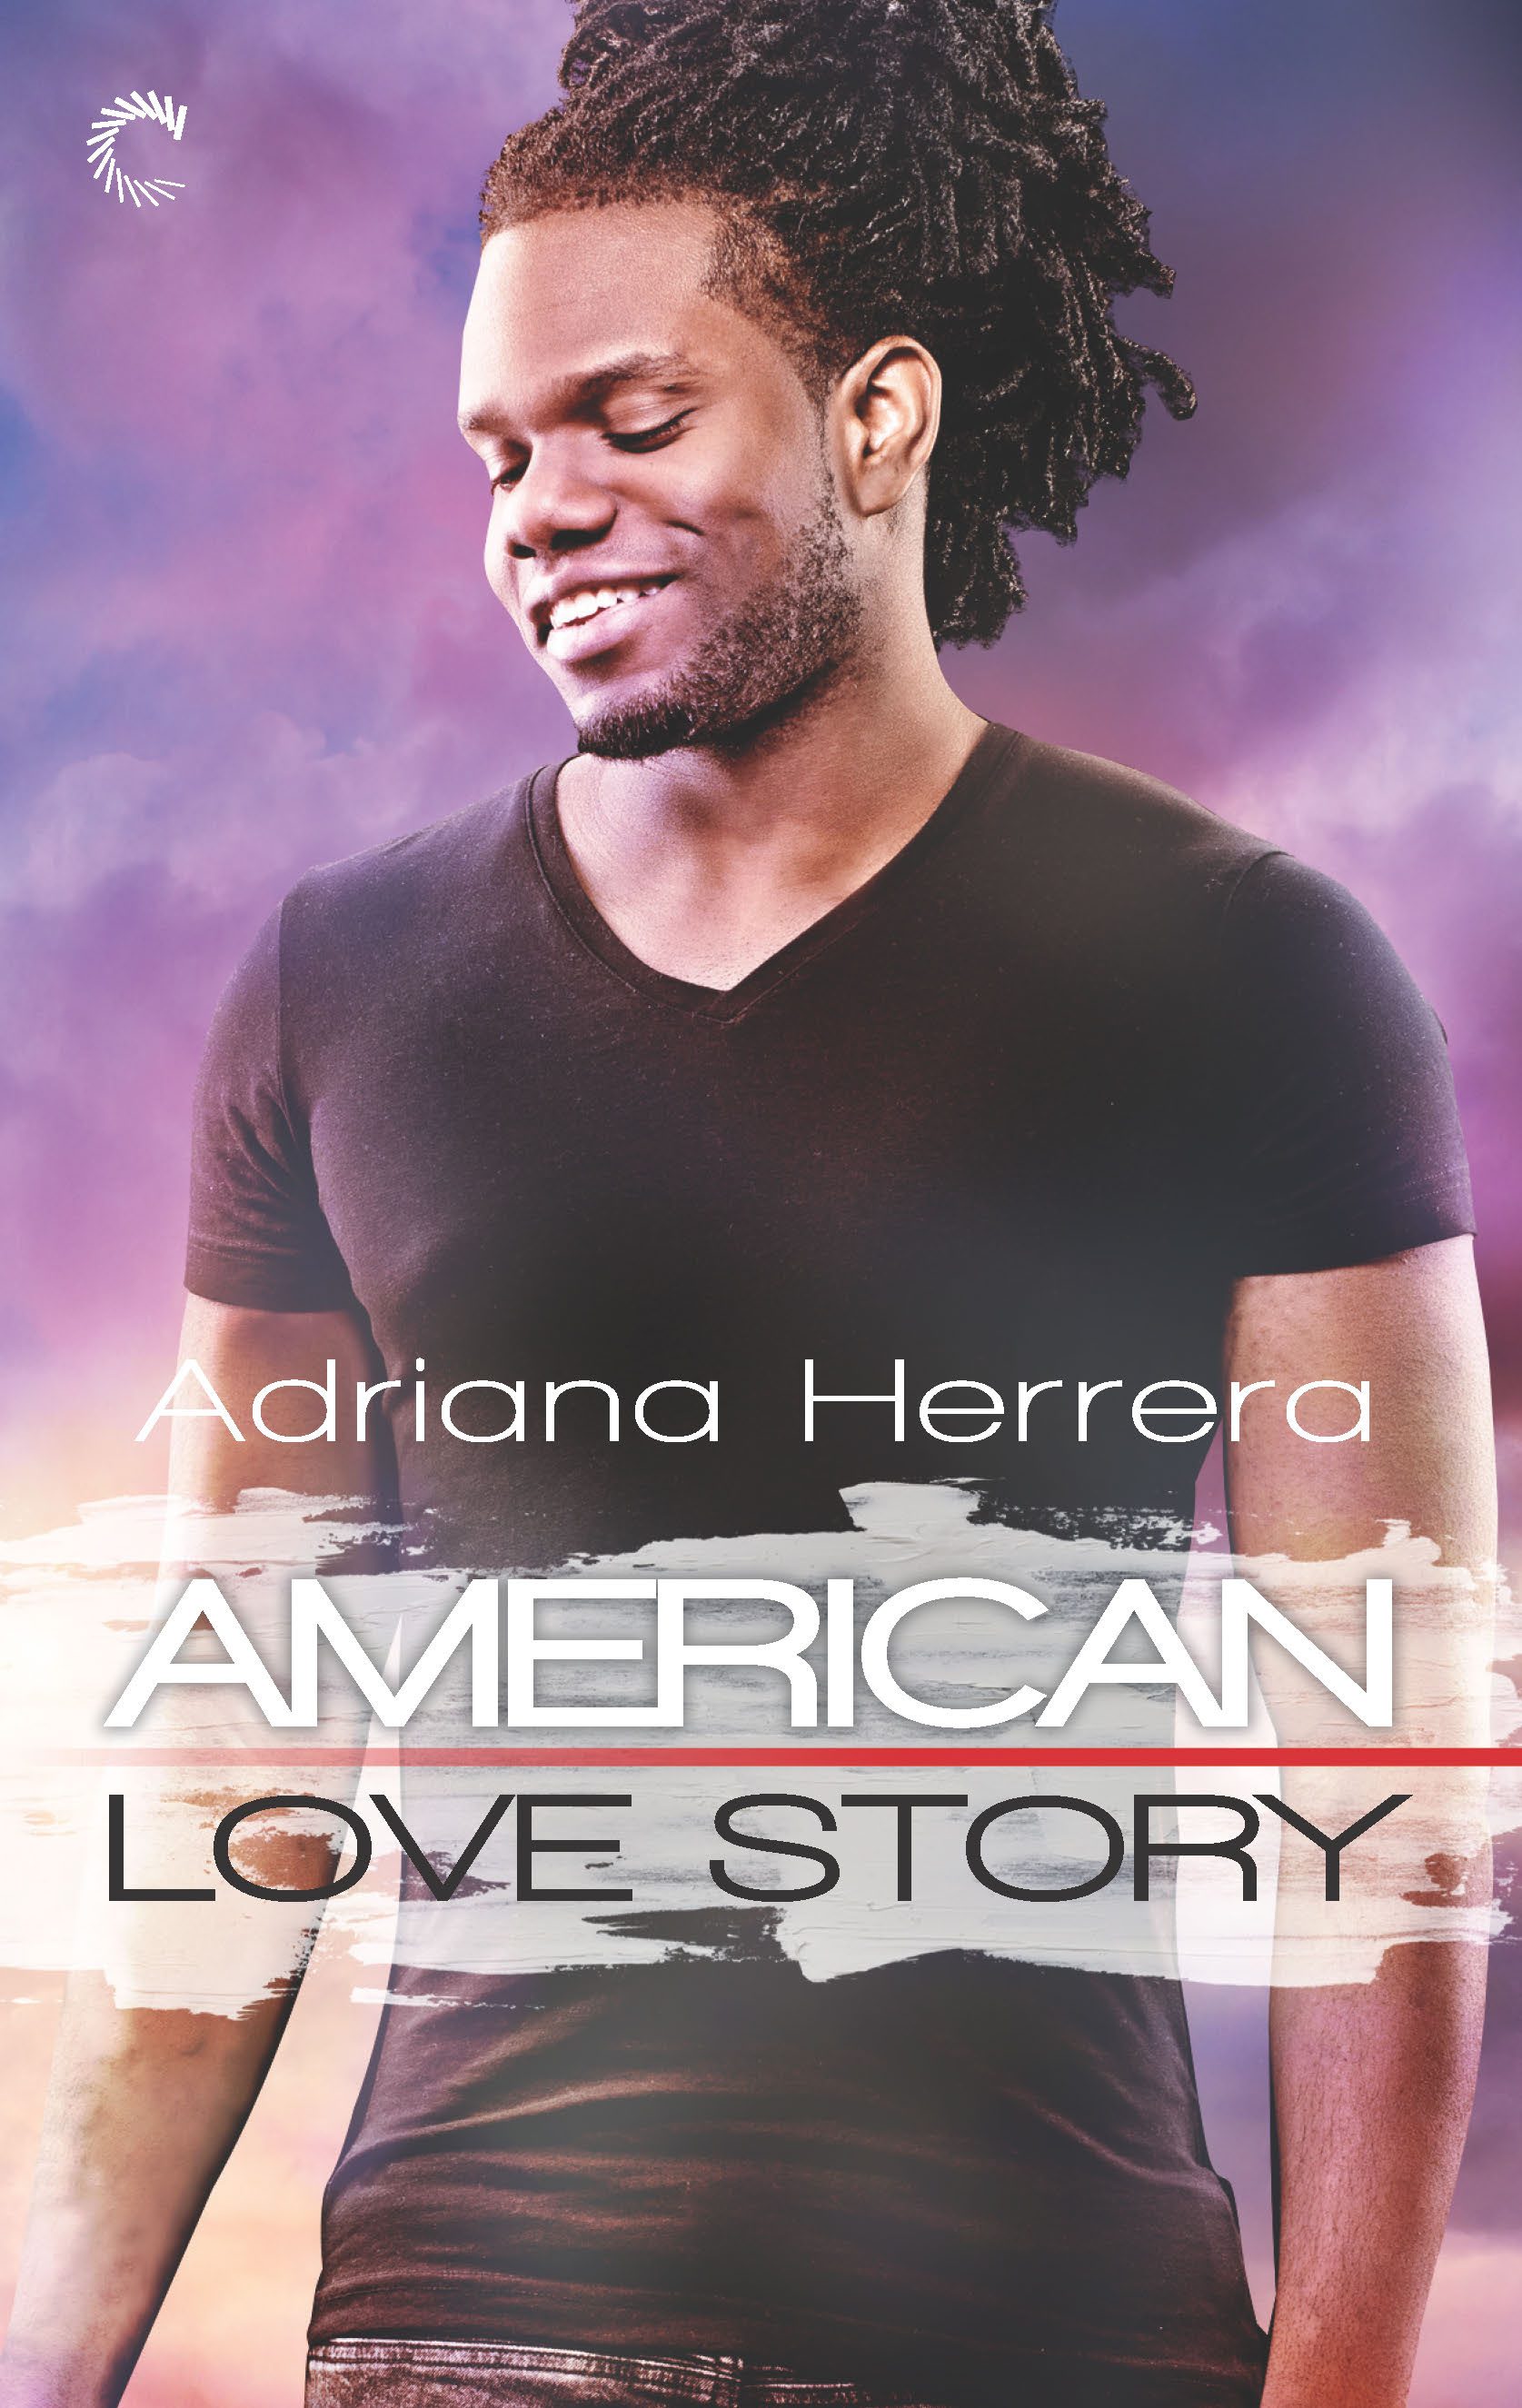 Guest Post: American Love Story by Adriana Herrera